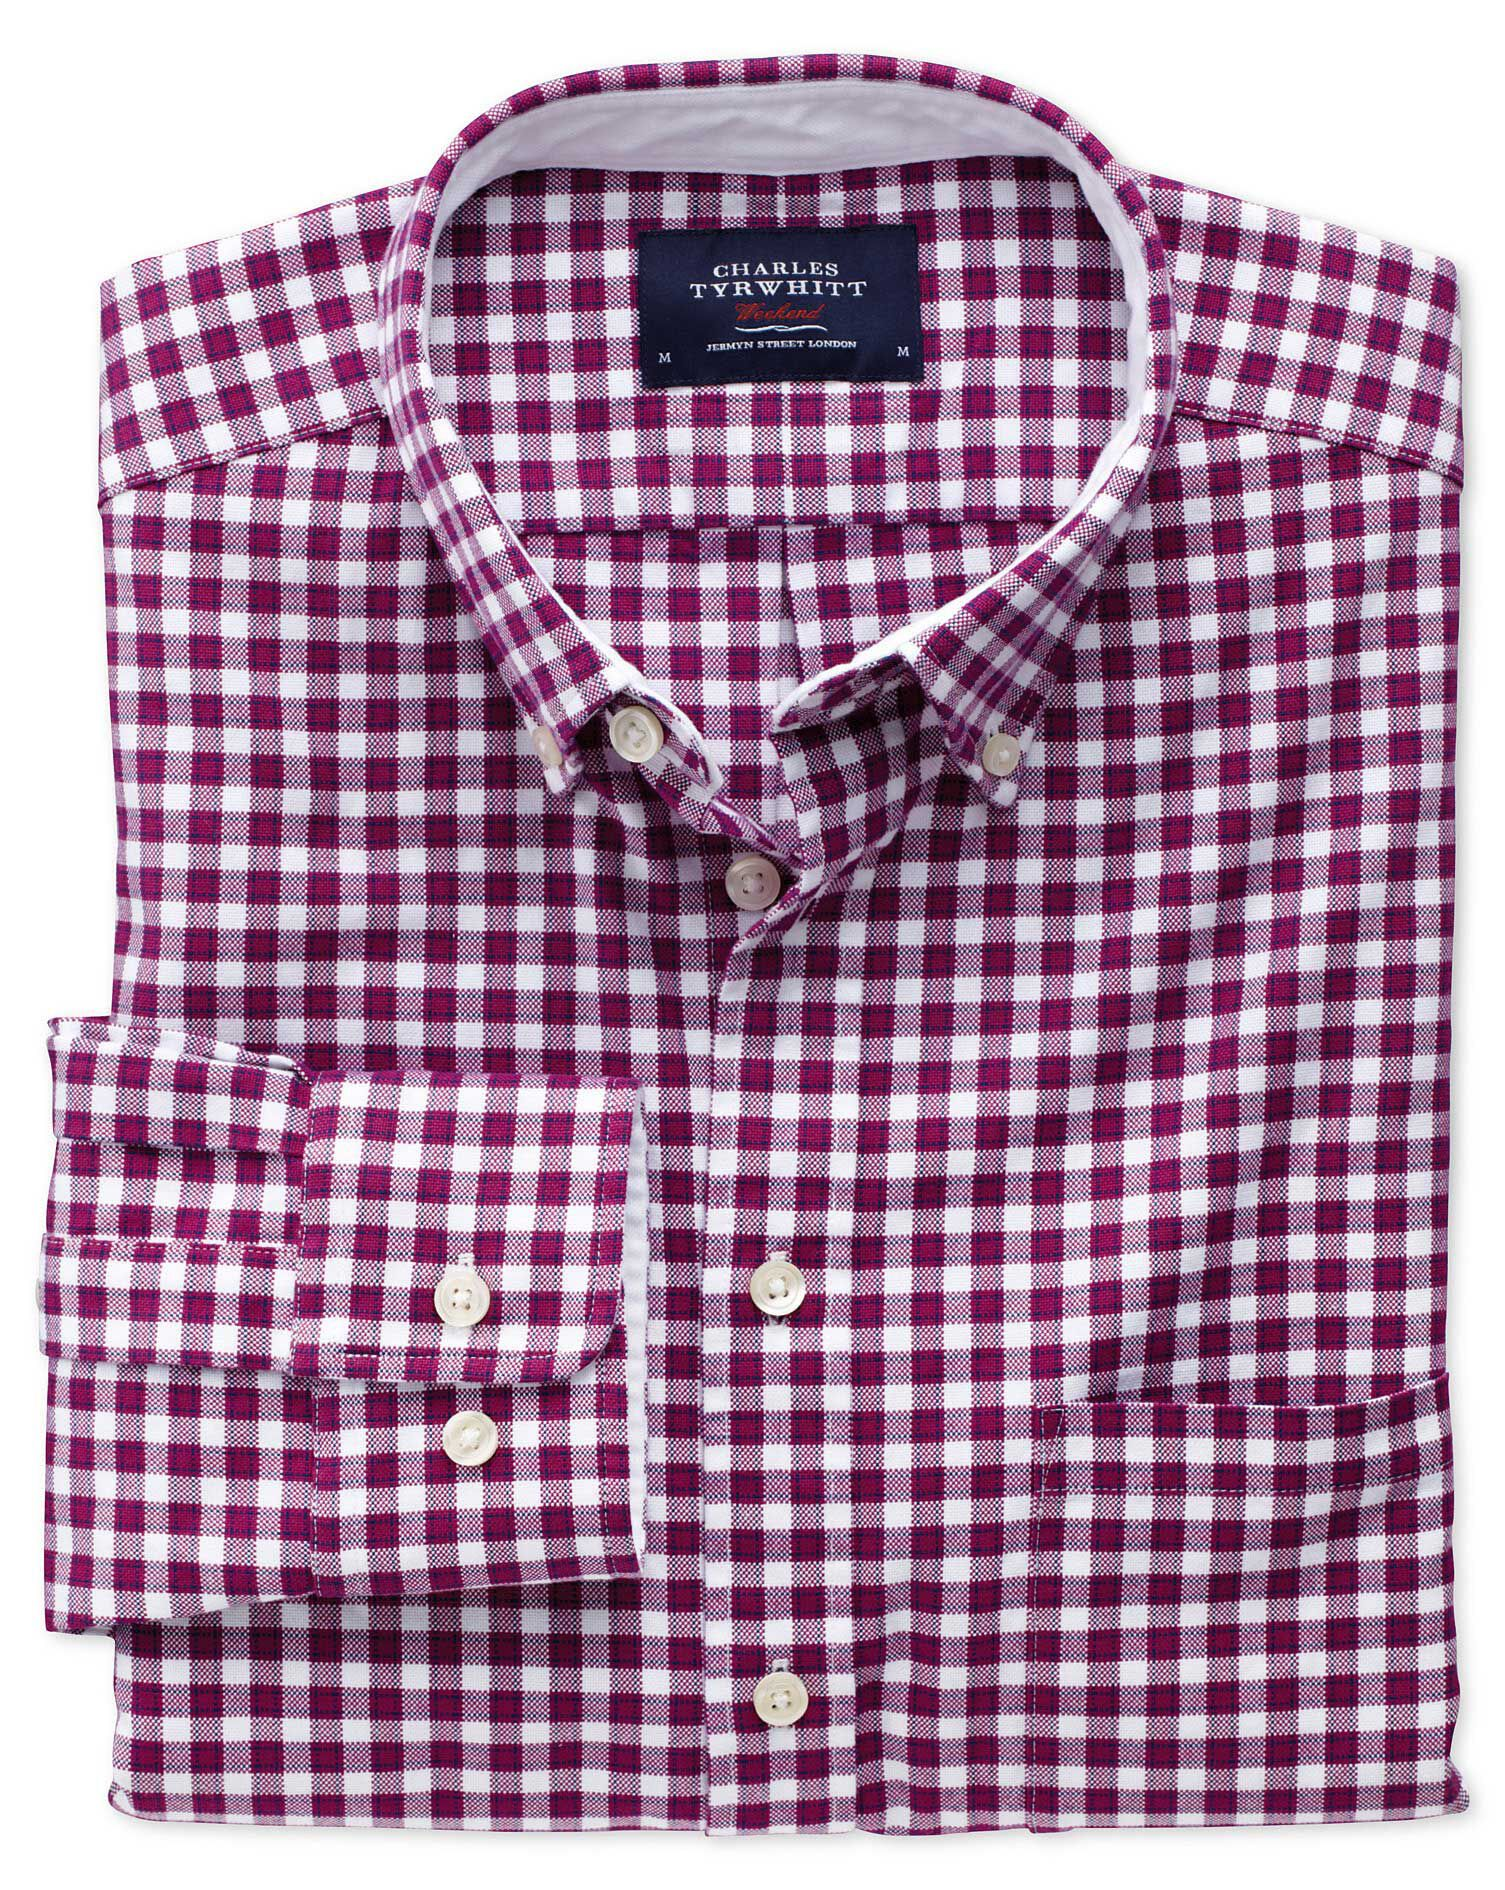 Extra Slim Fit Berry Check Washed Oxford Cotton Shirt Single Cuff Size Medium by Charles Tyrwhitt